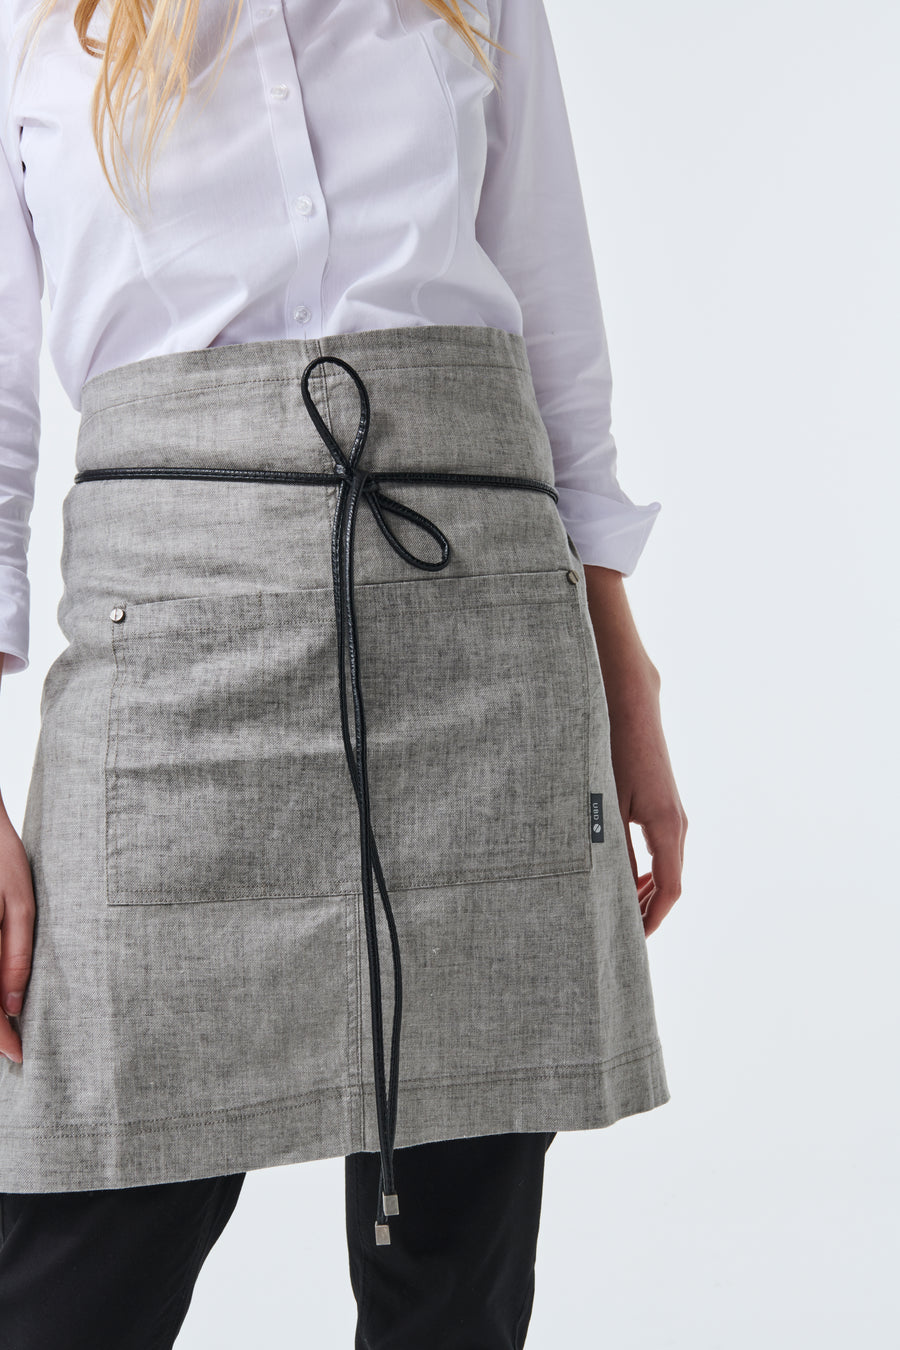 PRE ORDER GATSBY Linen Waist Apron with PU leather strap - Charcoal